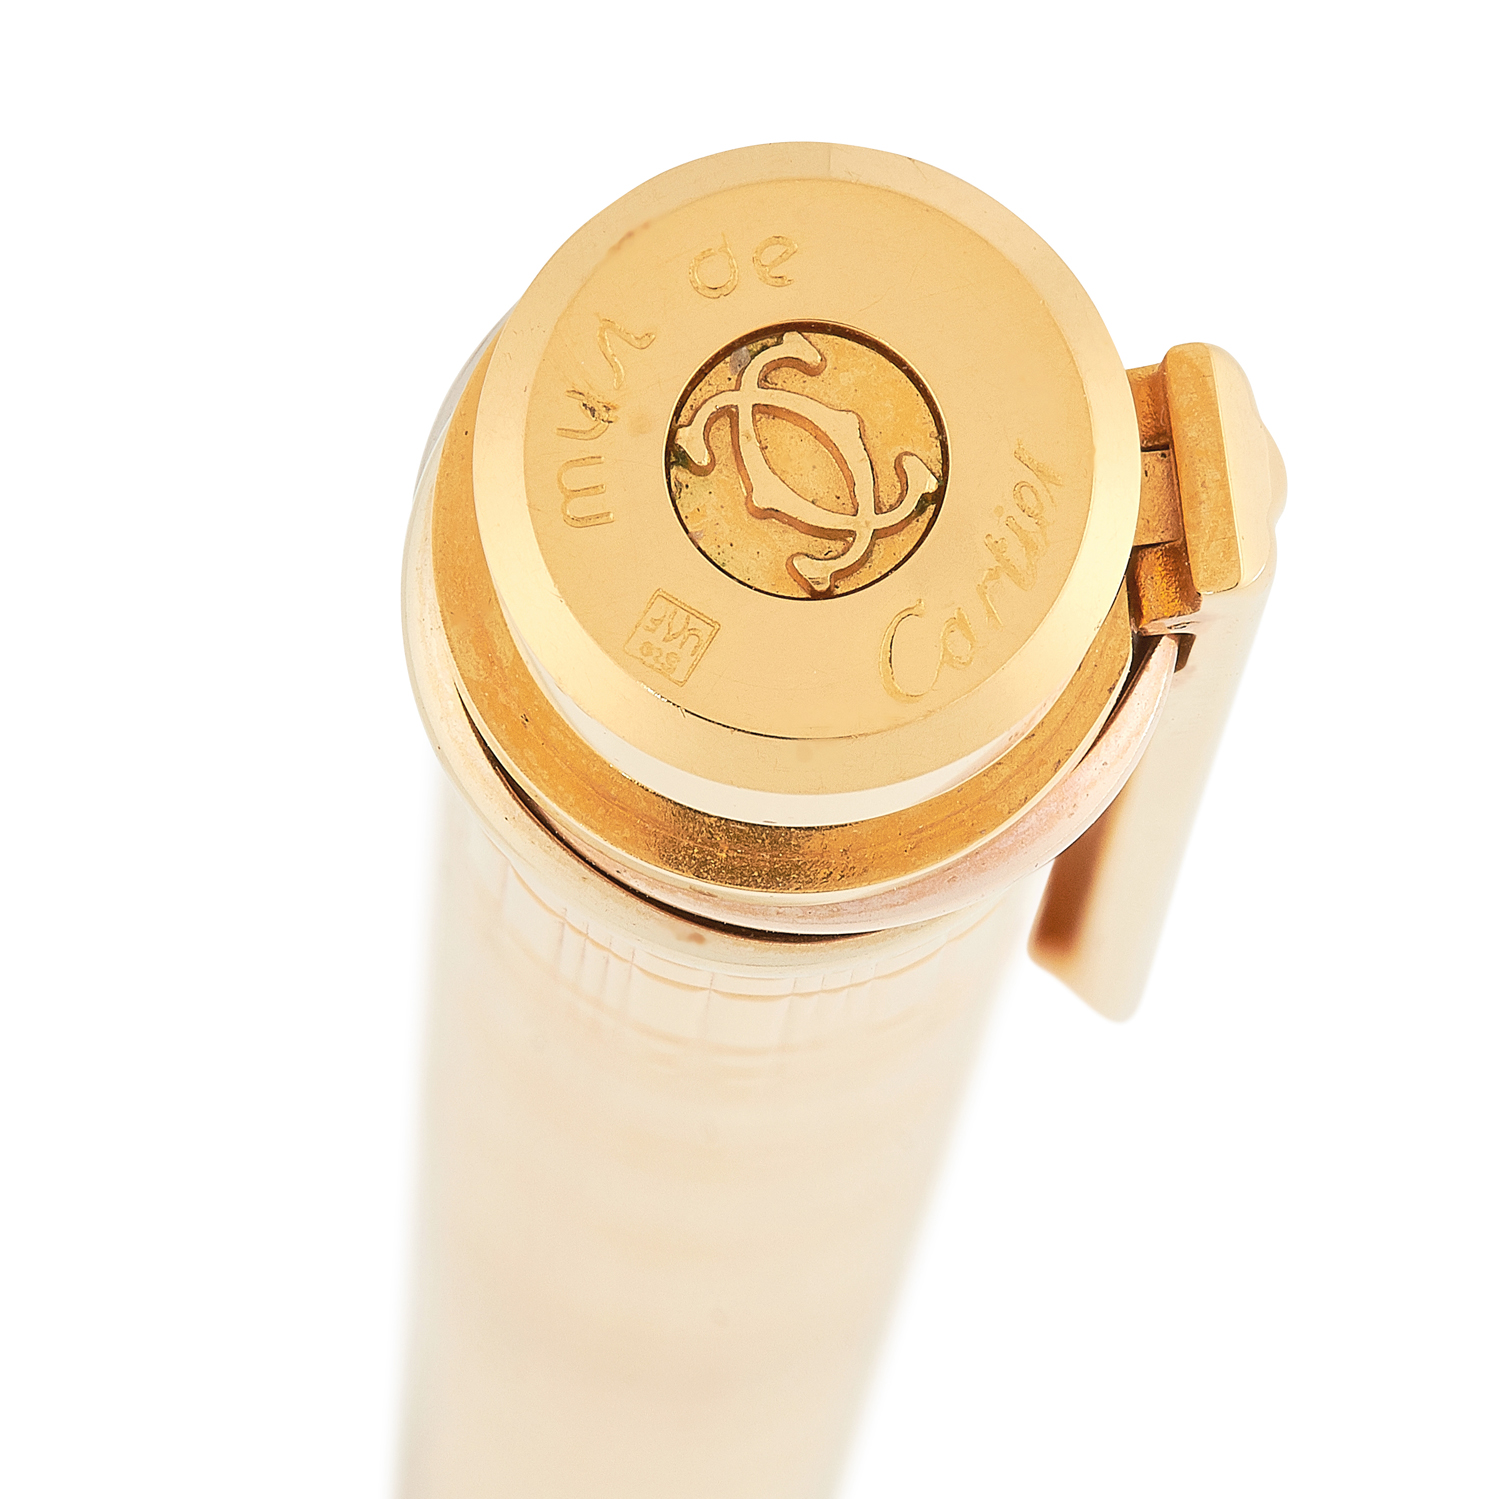 A TRINITY FOUNTAIN PEN, CARTIER in gold plate, in textured gold design, signed Cartier, 13.5cm / 5. - Image 3 of 3